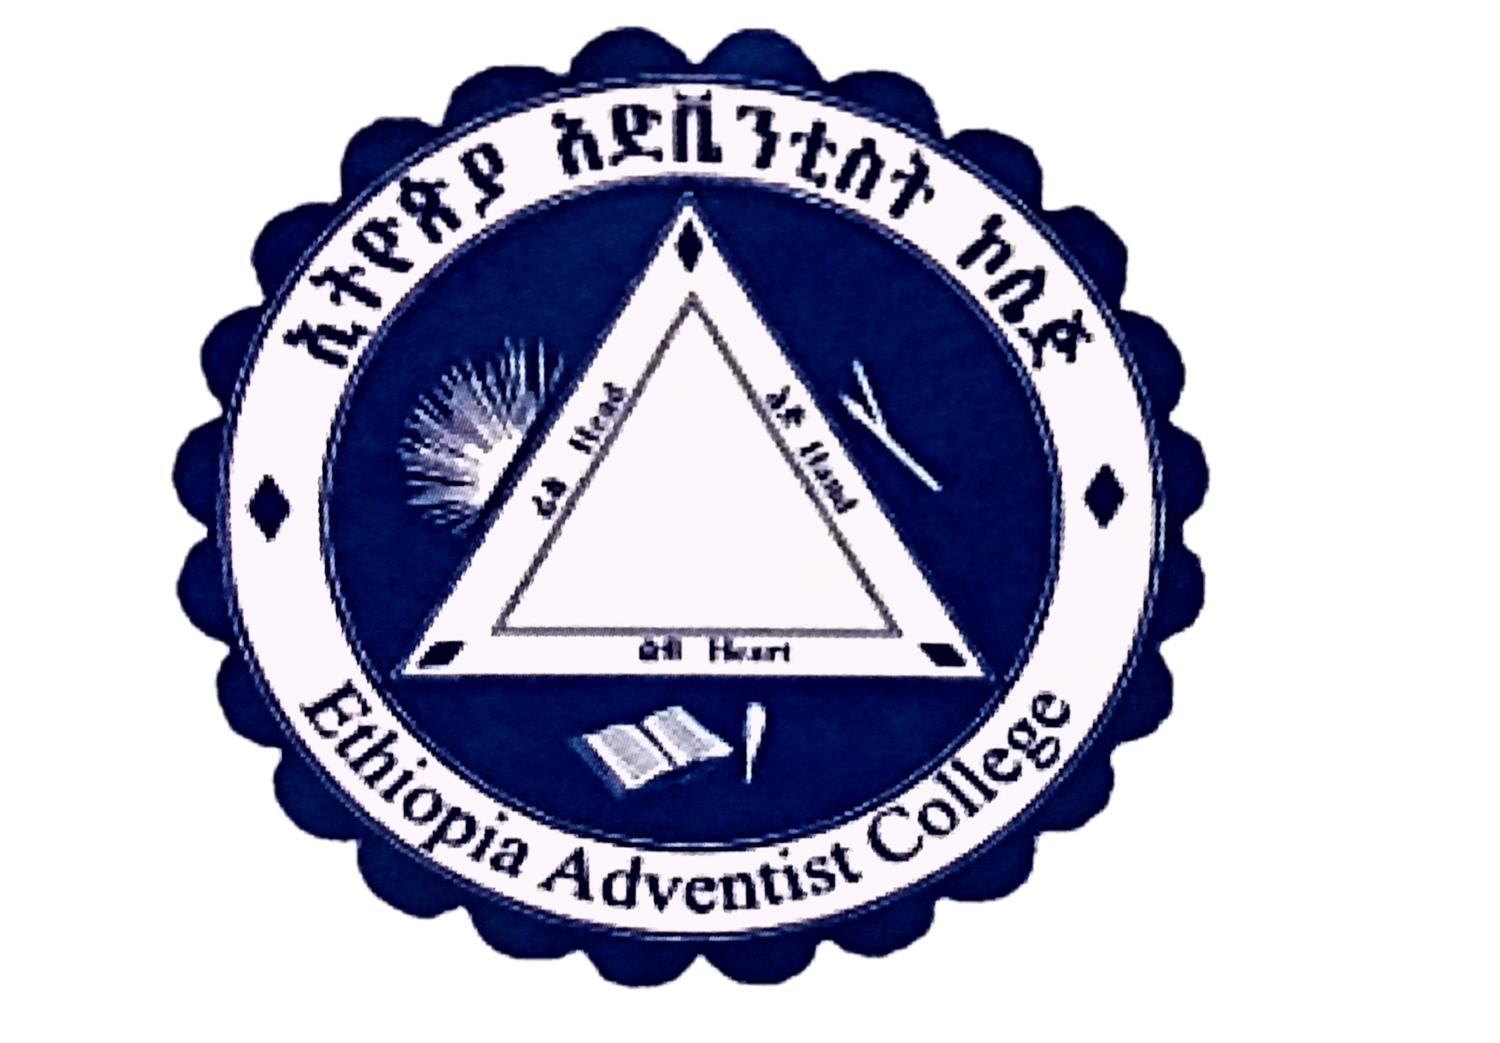 Ethiopia Adventist College